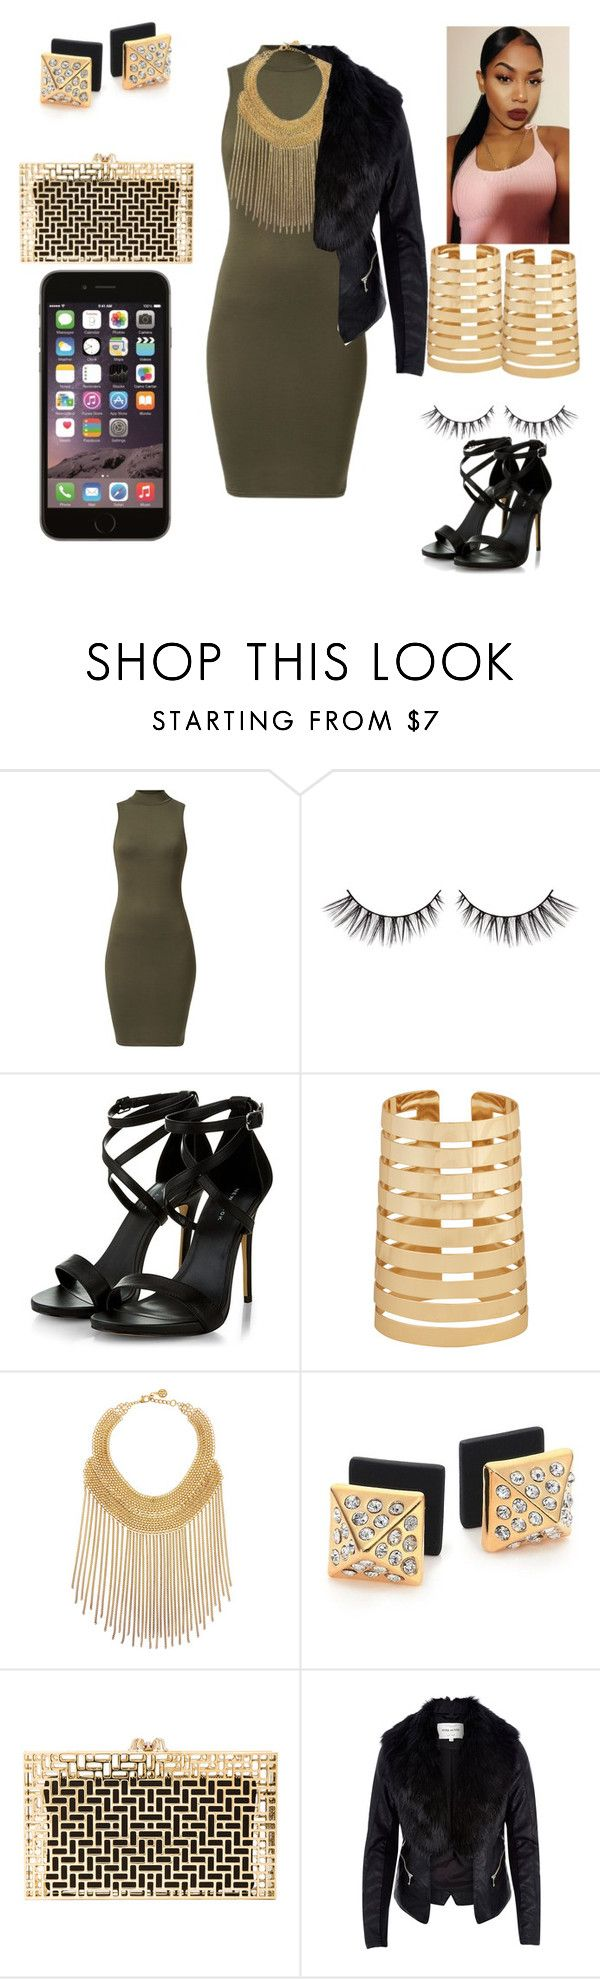 """Drink Team "" by mrsfashionkilla ❤ liked on Polyvore featuring Forever 21, Ben-Amun, Marc by Marc Jacobs, Charlotte Olympia and River Island"